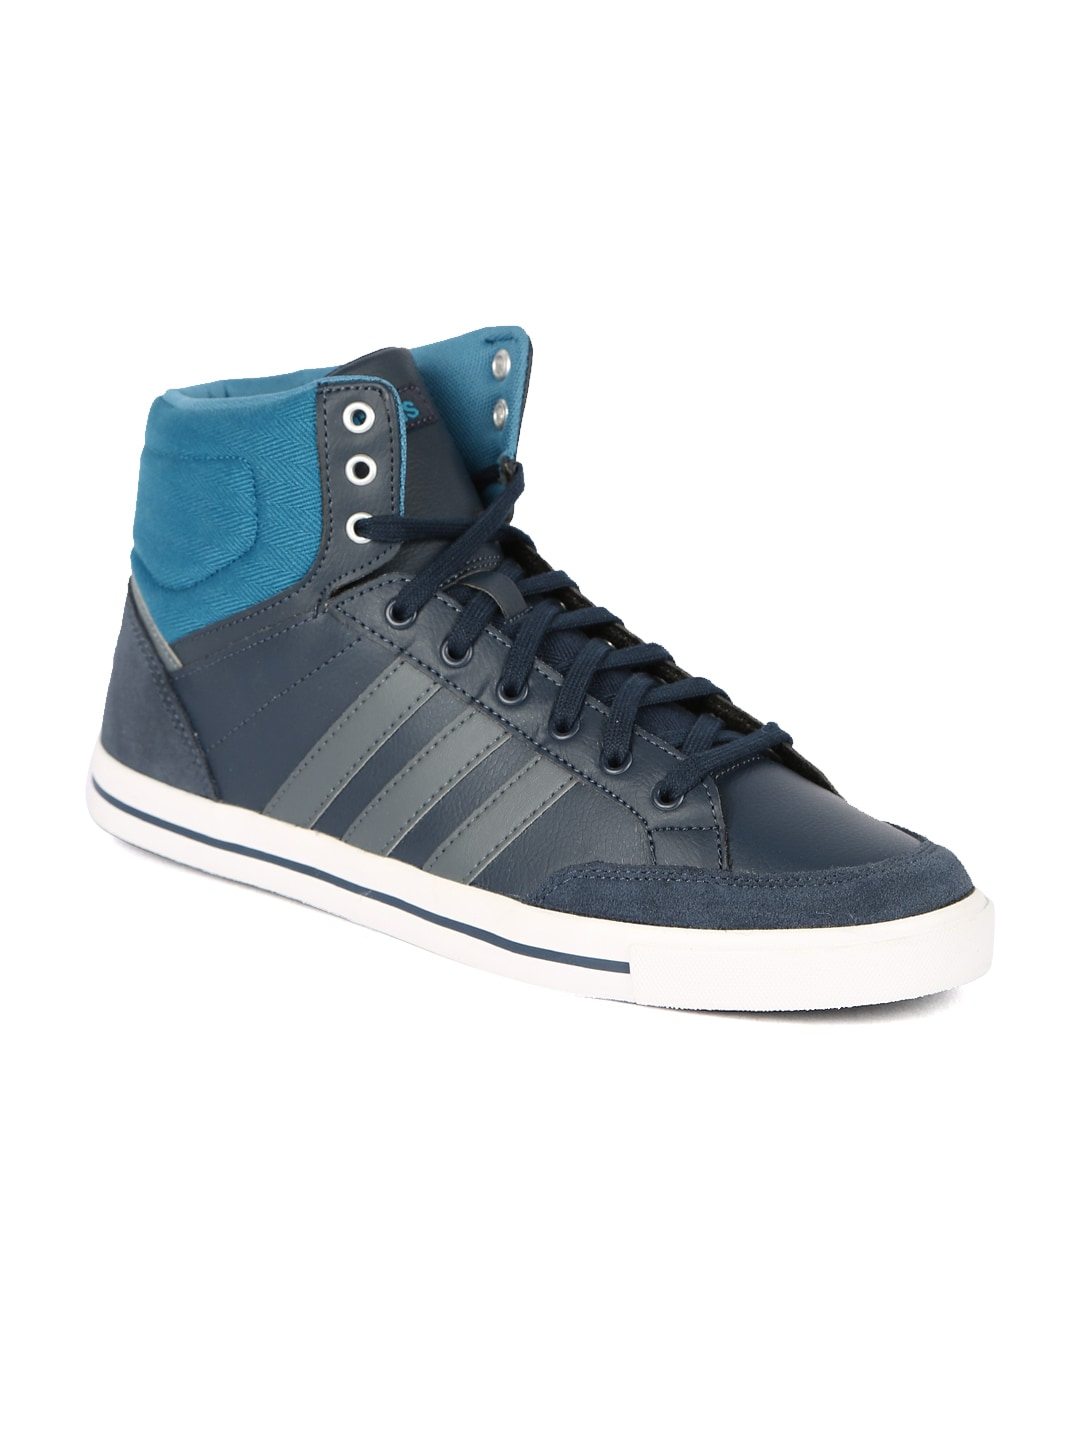 e13f9ef60480 Men Adidas Neo Shoes - Buy Men Adidas Neo Shoes online in India